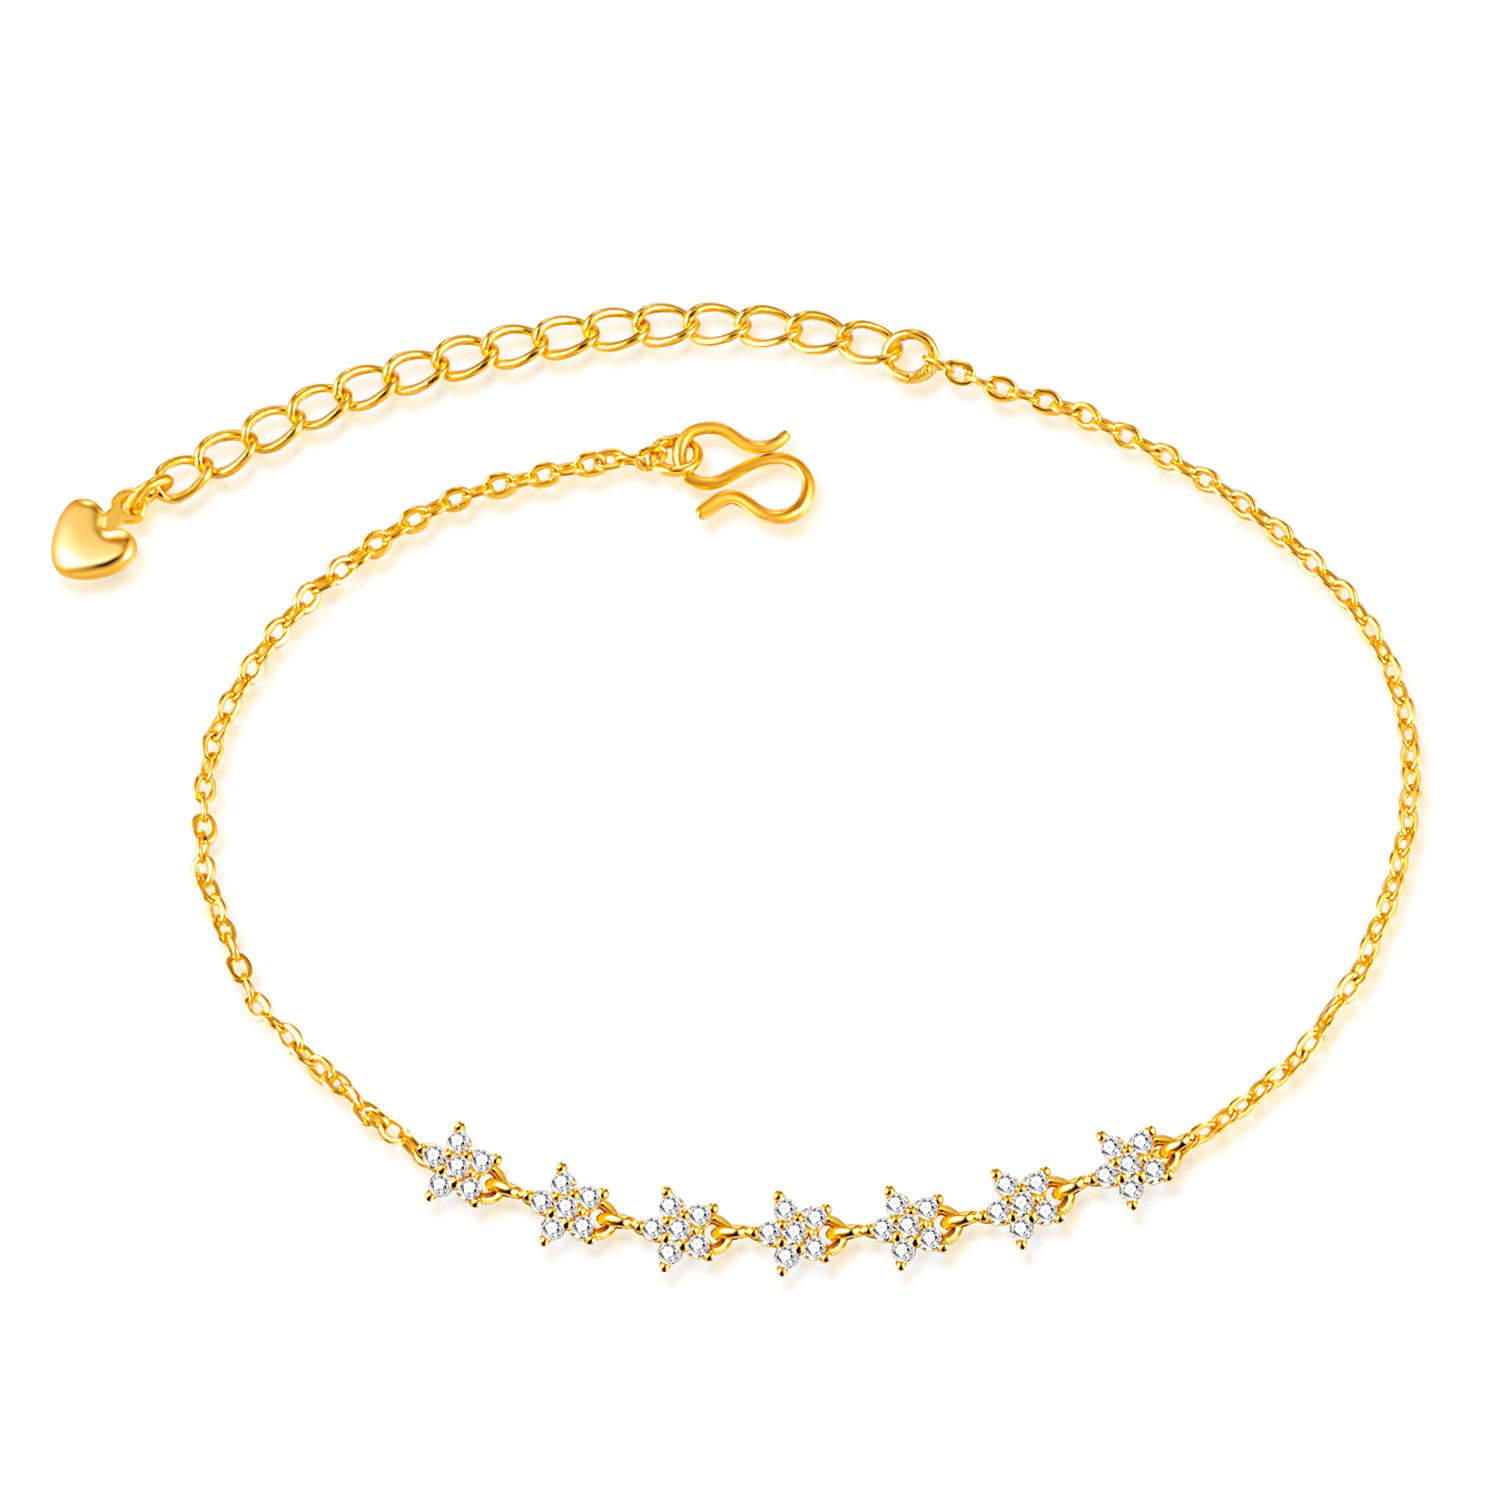 Lucky Stars Chain Ankle Bracelets Lary Jewelry 18K Gold Plated Adjustable Anklet